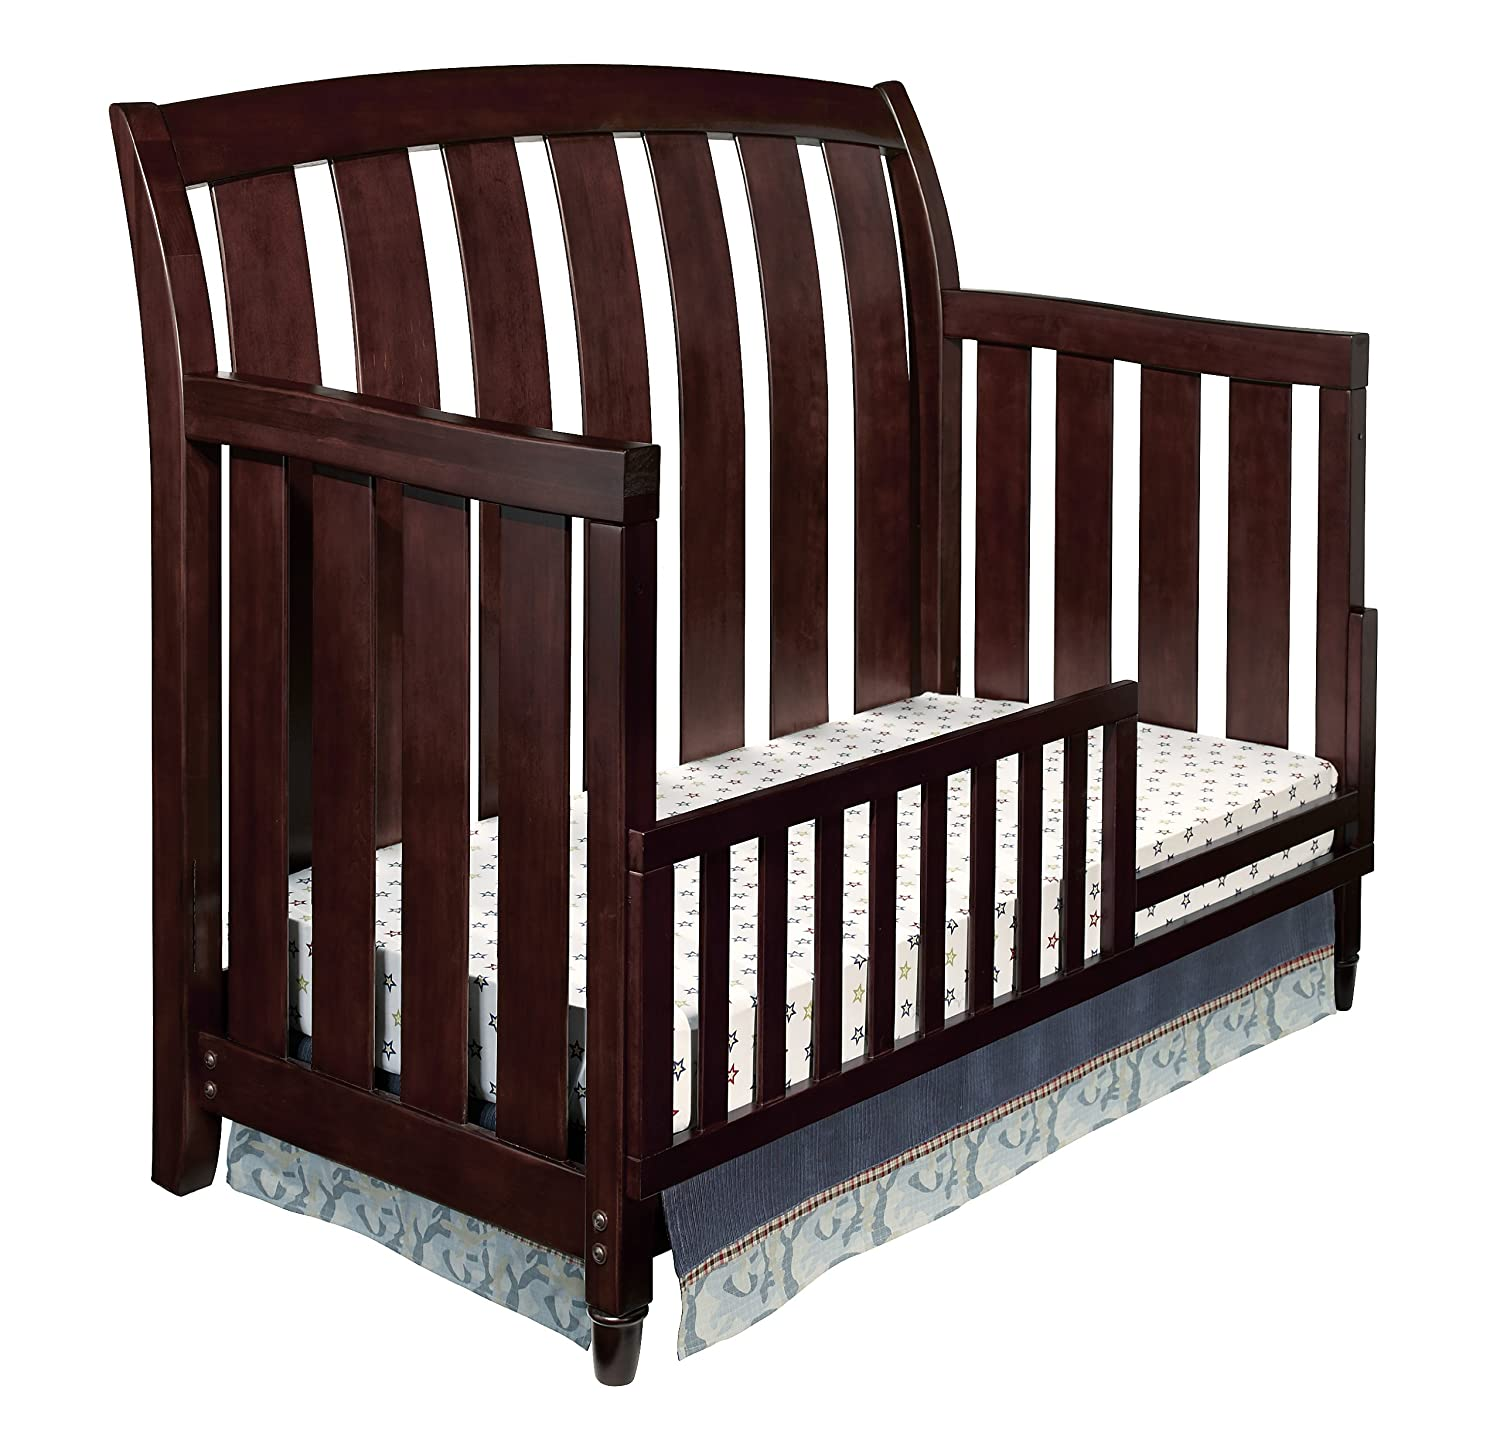 cribs exciting baby r dijizz in ridge convertible westwood cloud com design crib pine panel amazon